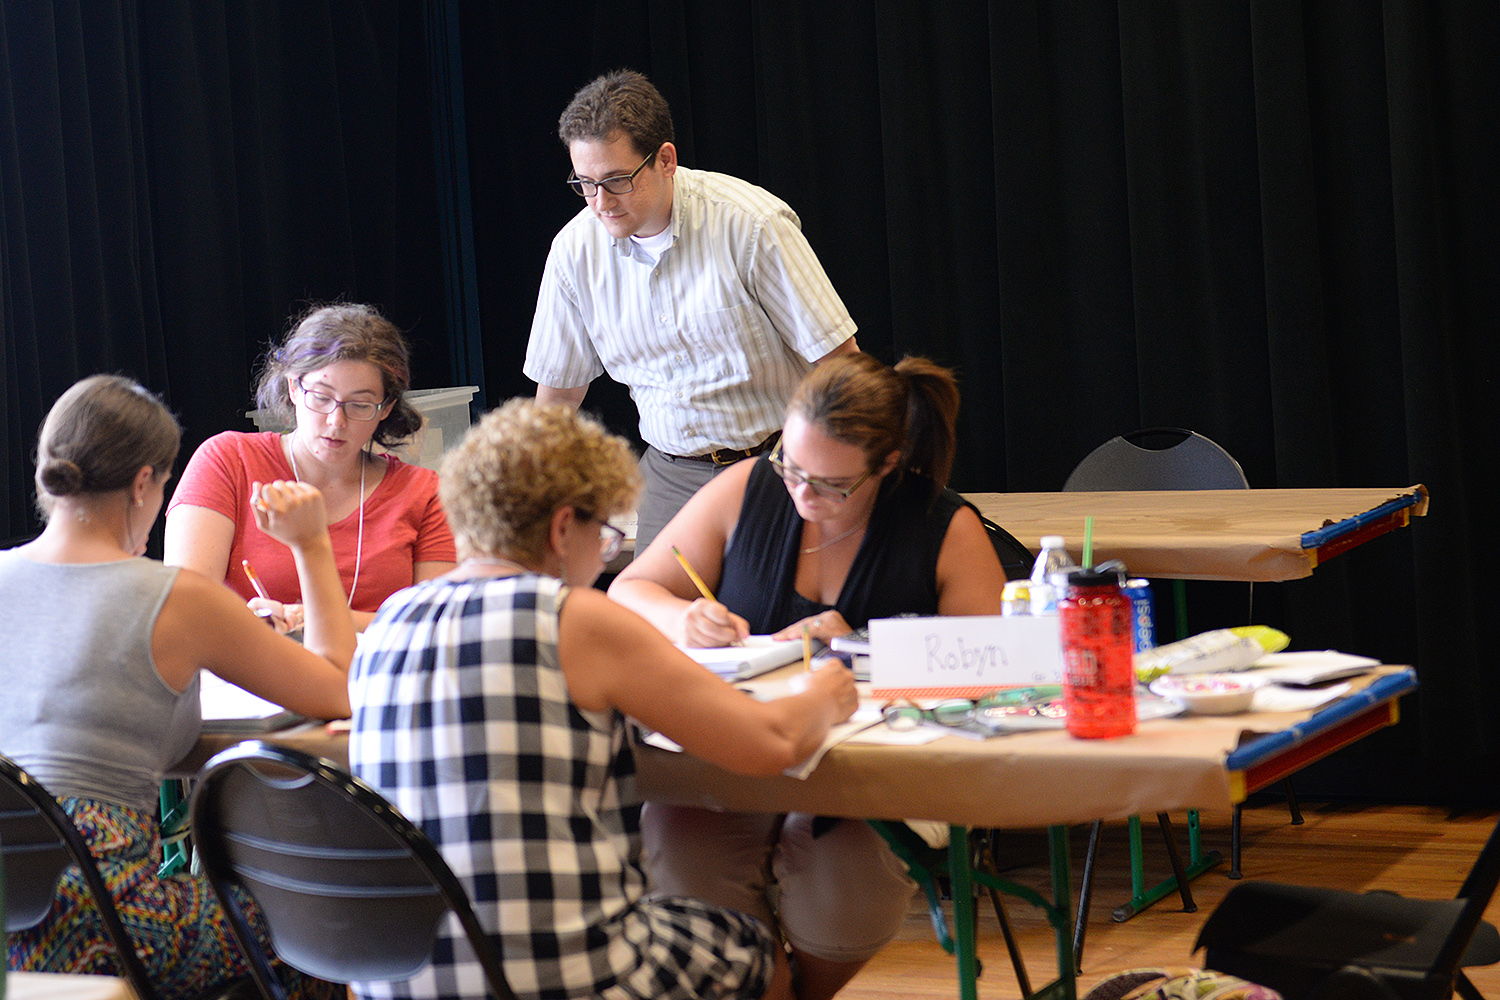 Christopher Rasmussen works with a group of local math teachers.